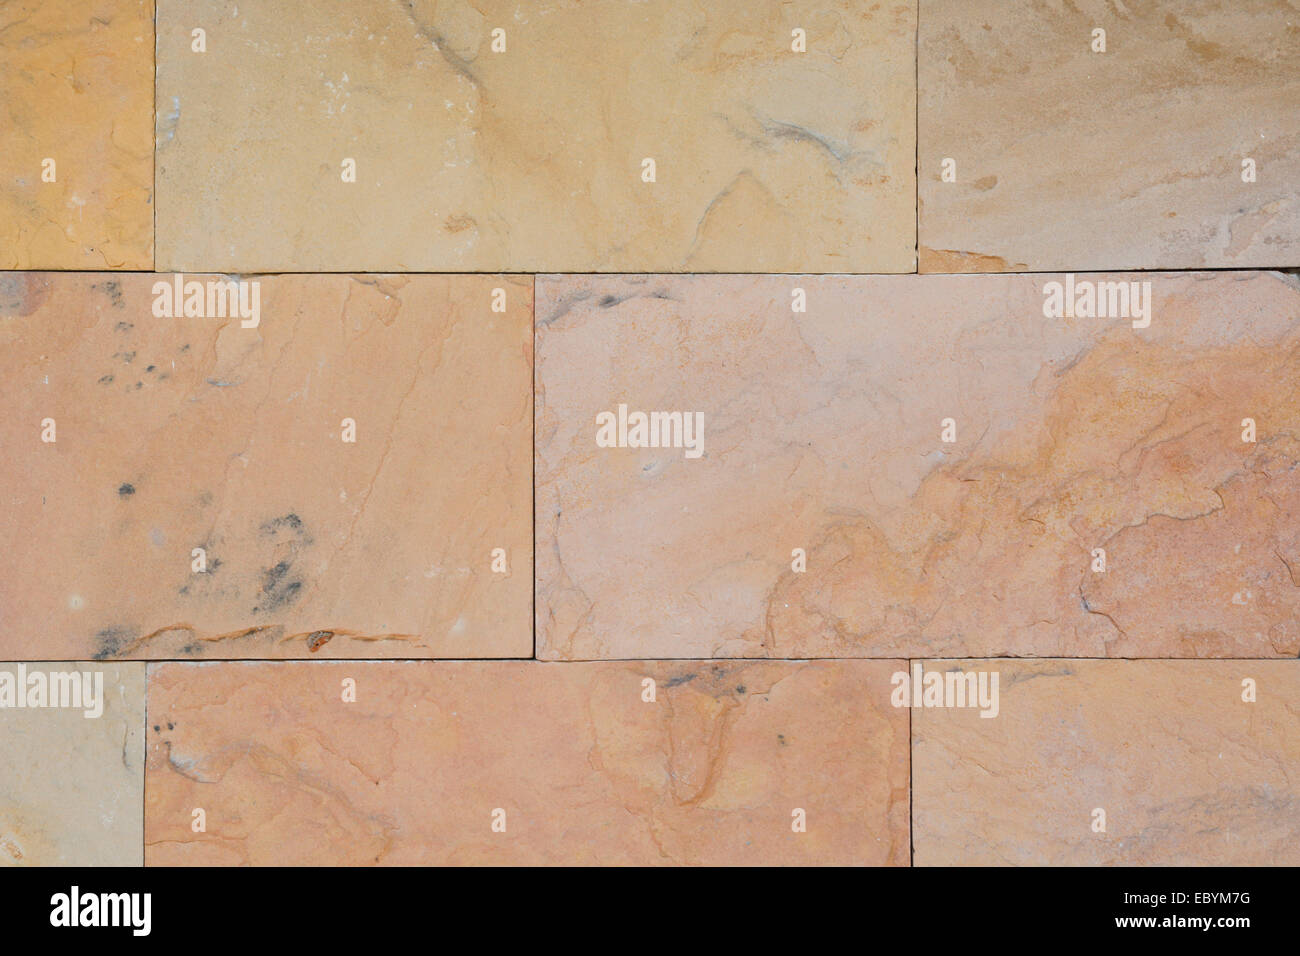 Stone texture wallpaper background - Stock Image